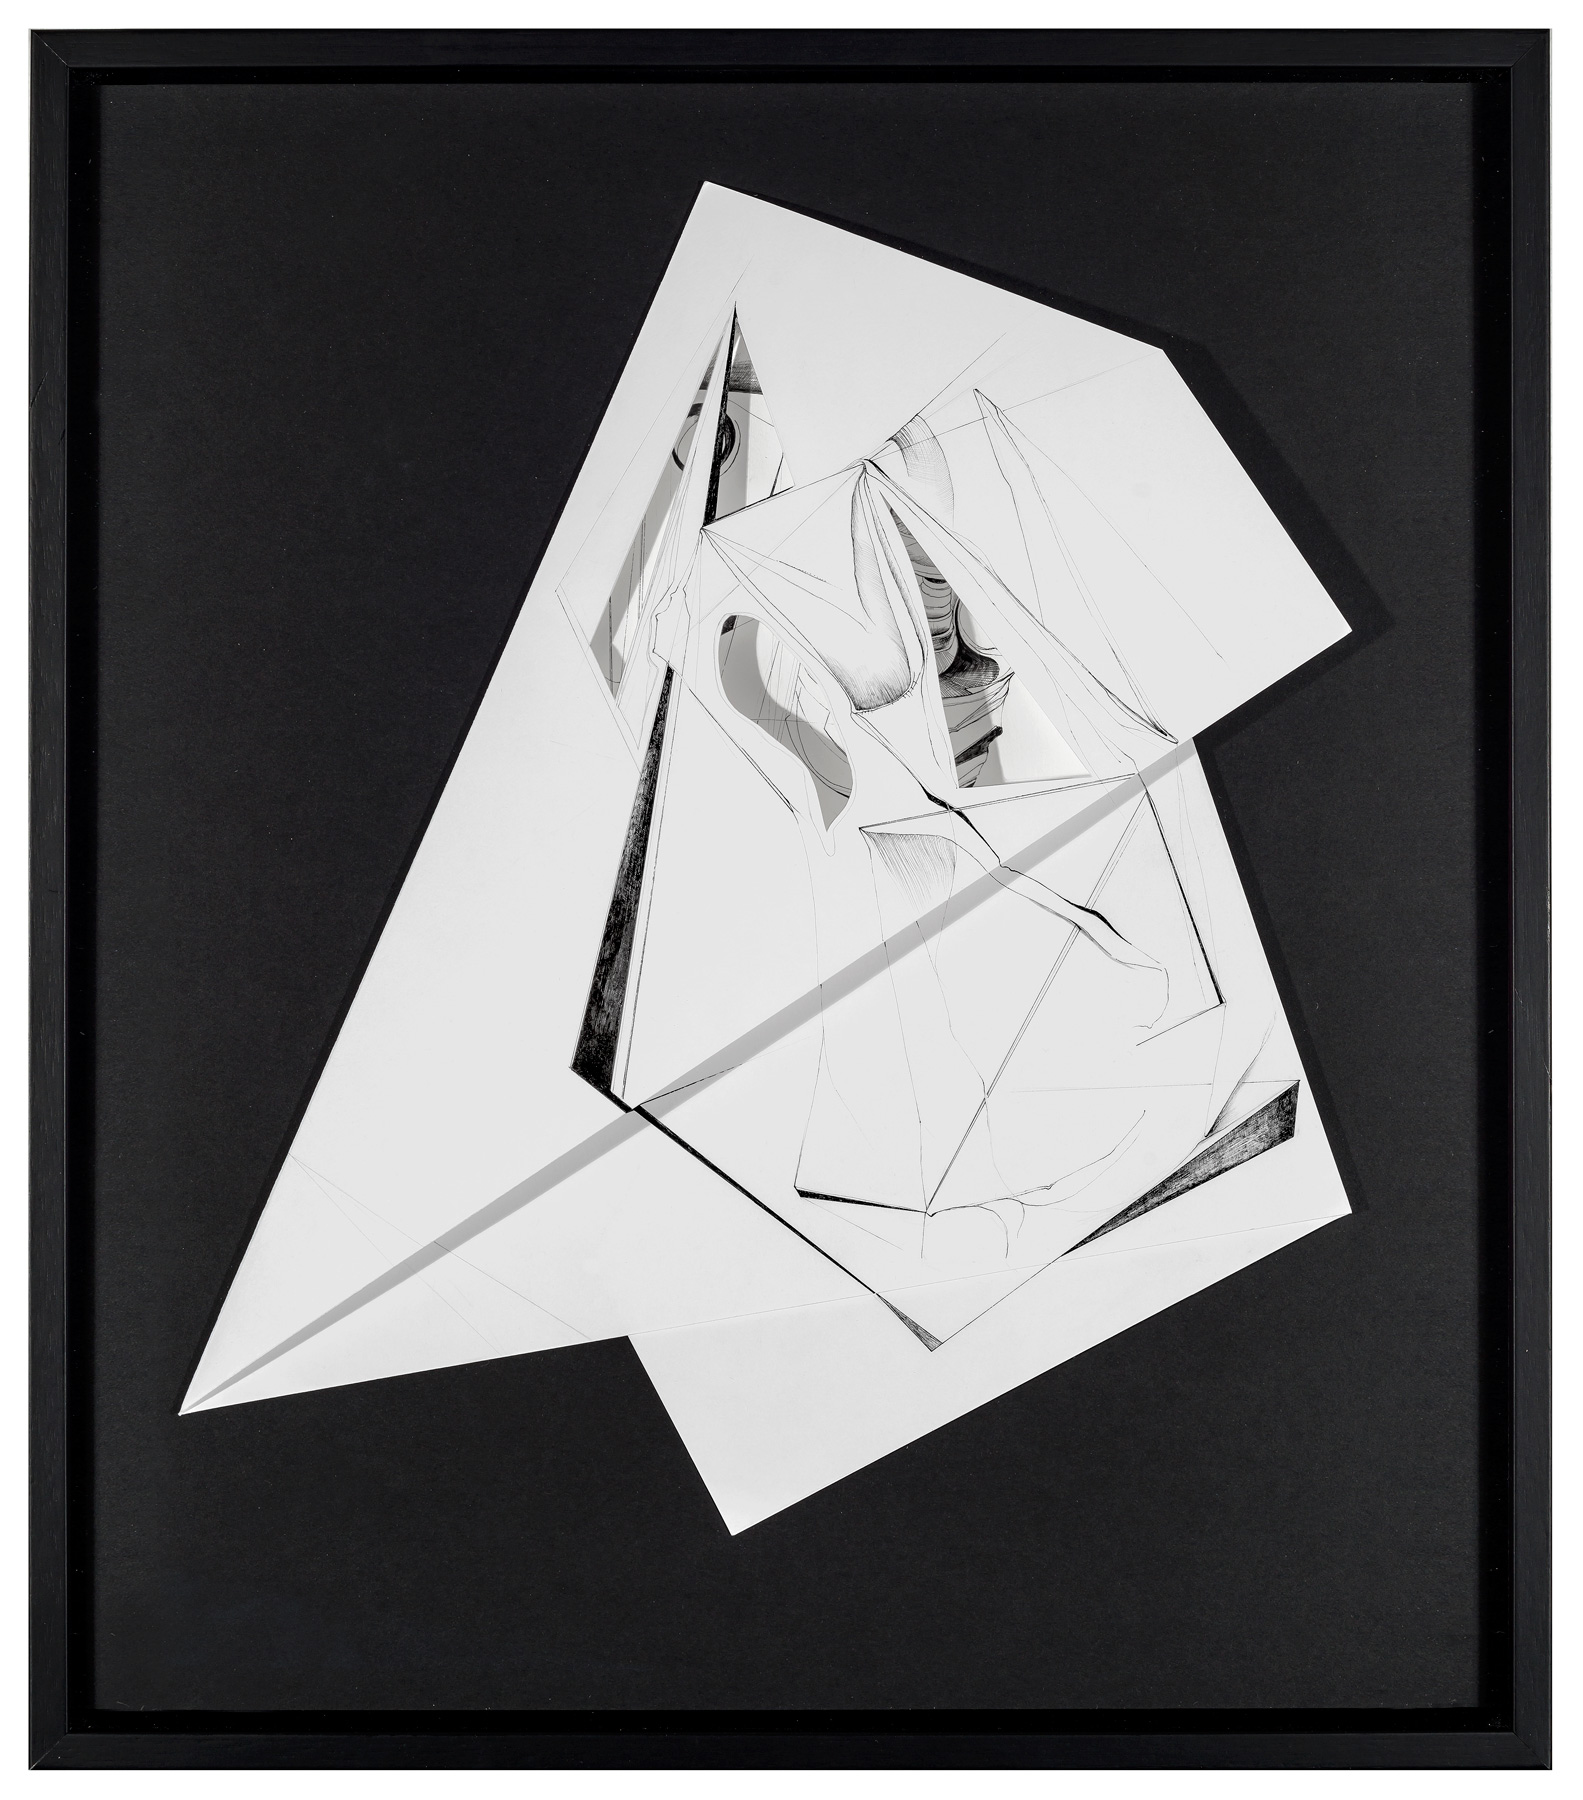 Nina Annabelle Märkl | Fragmented Fiction V | Ink on folded paper cut outs | 47 x 33 cm | 2015 | photo: Walter Bayer